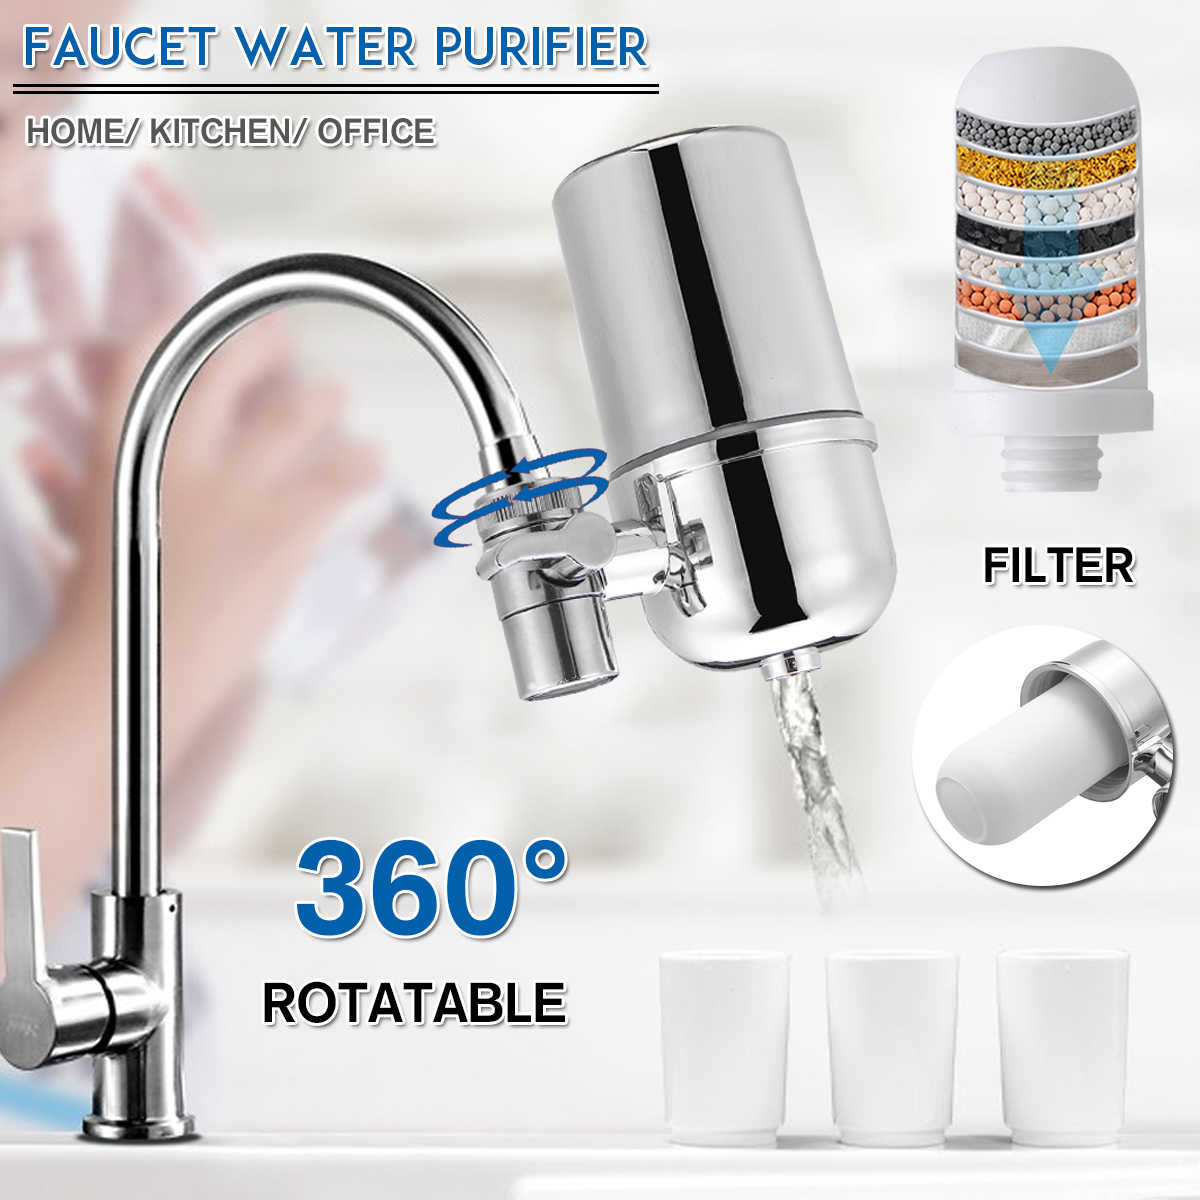 reusable faucet water filter for kitchen sink mount filtration tap purifier